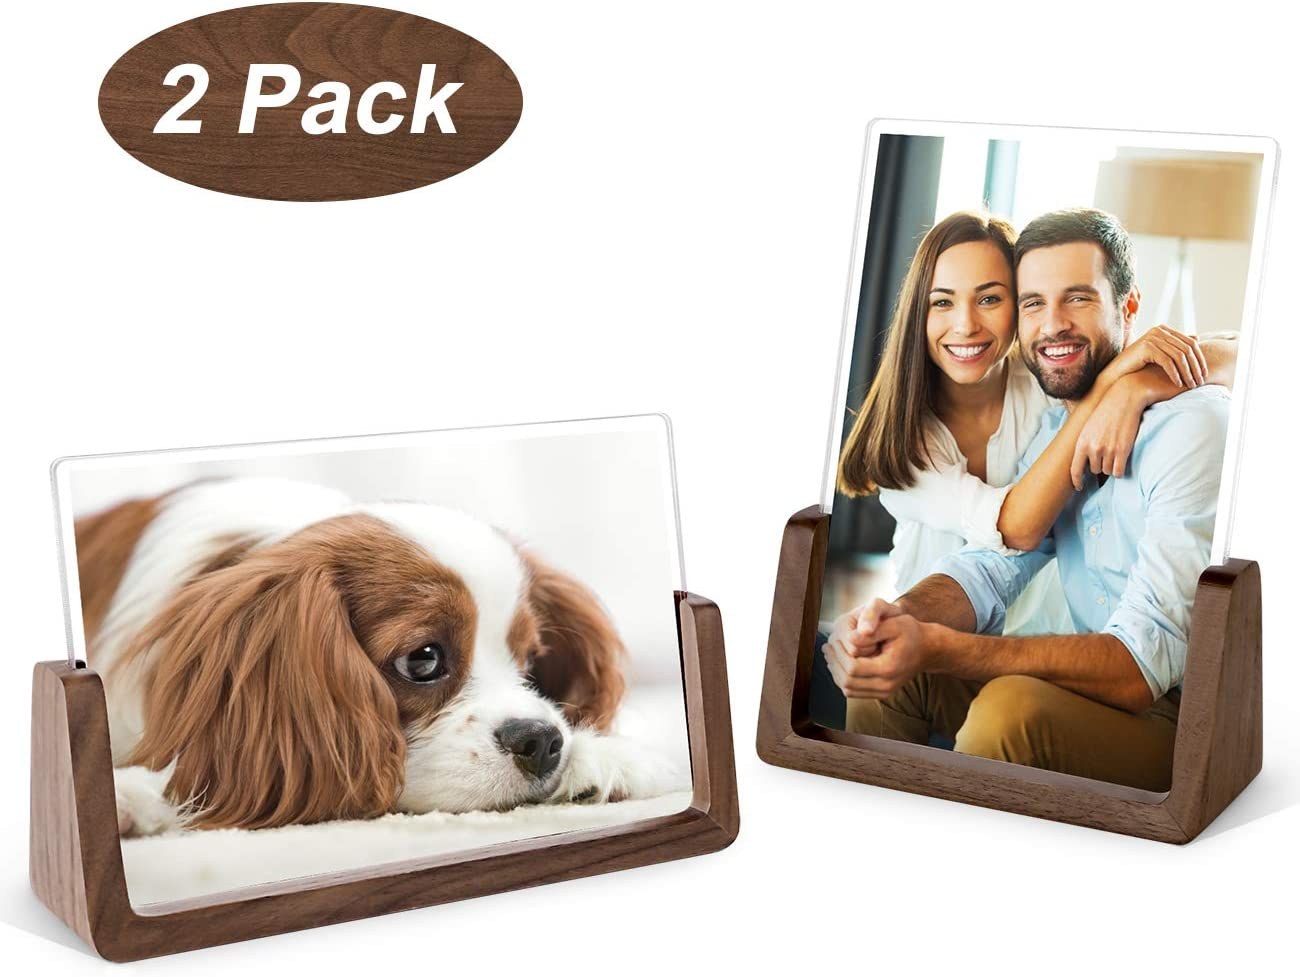 Mixoo 4x6 Wood Photo Picture Frame 2 Pack - Rustic Wooden Picture Frame with Walnut Wood Base and High Definition Break Free Acrylic Covers for Tabletop or Desktop Display (Horizontal + Vertical)